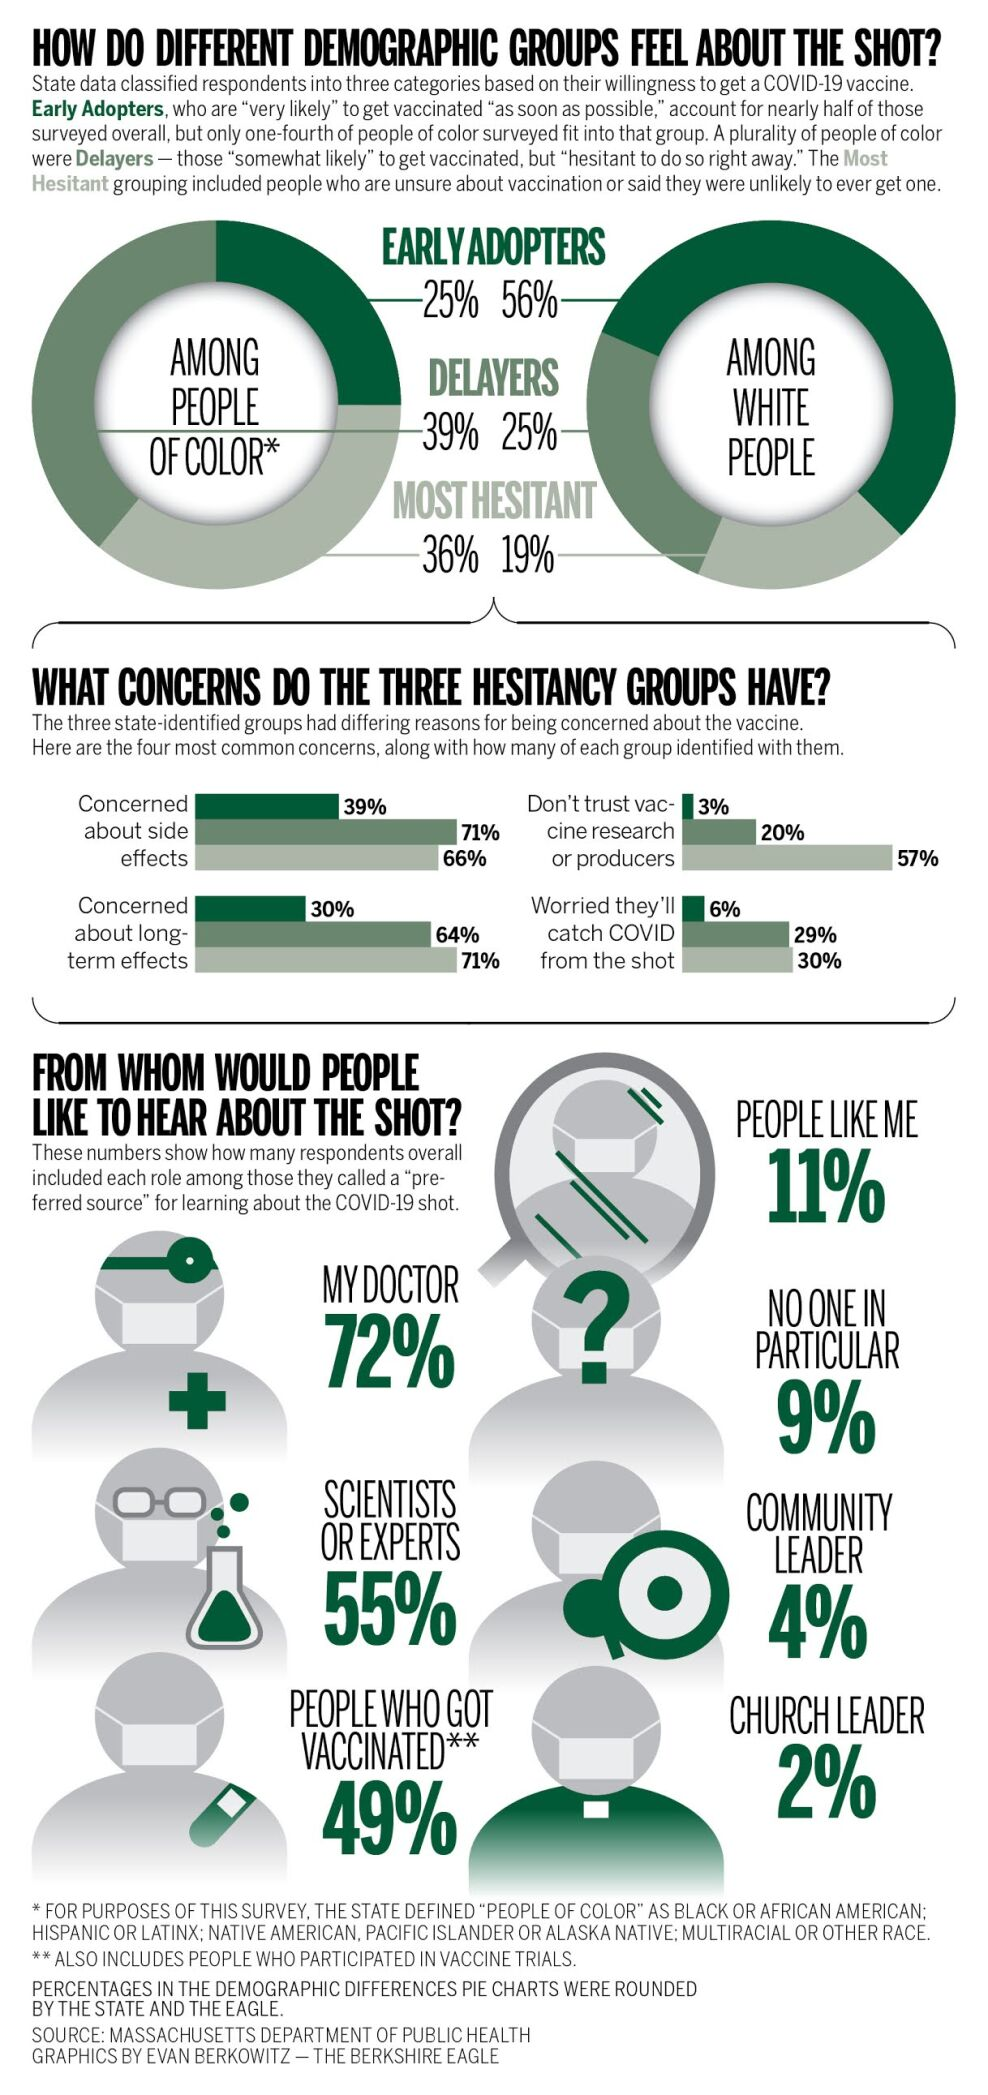 Graphic breakdown of how different demographic groups feel about COVID-19 vaccines.